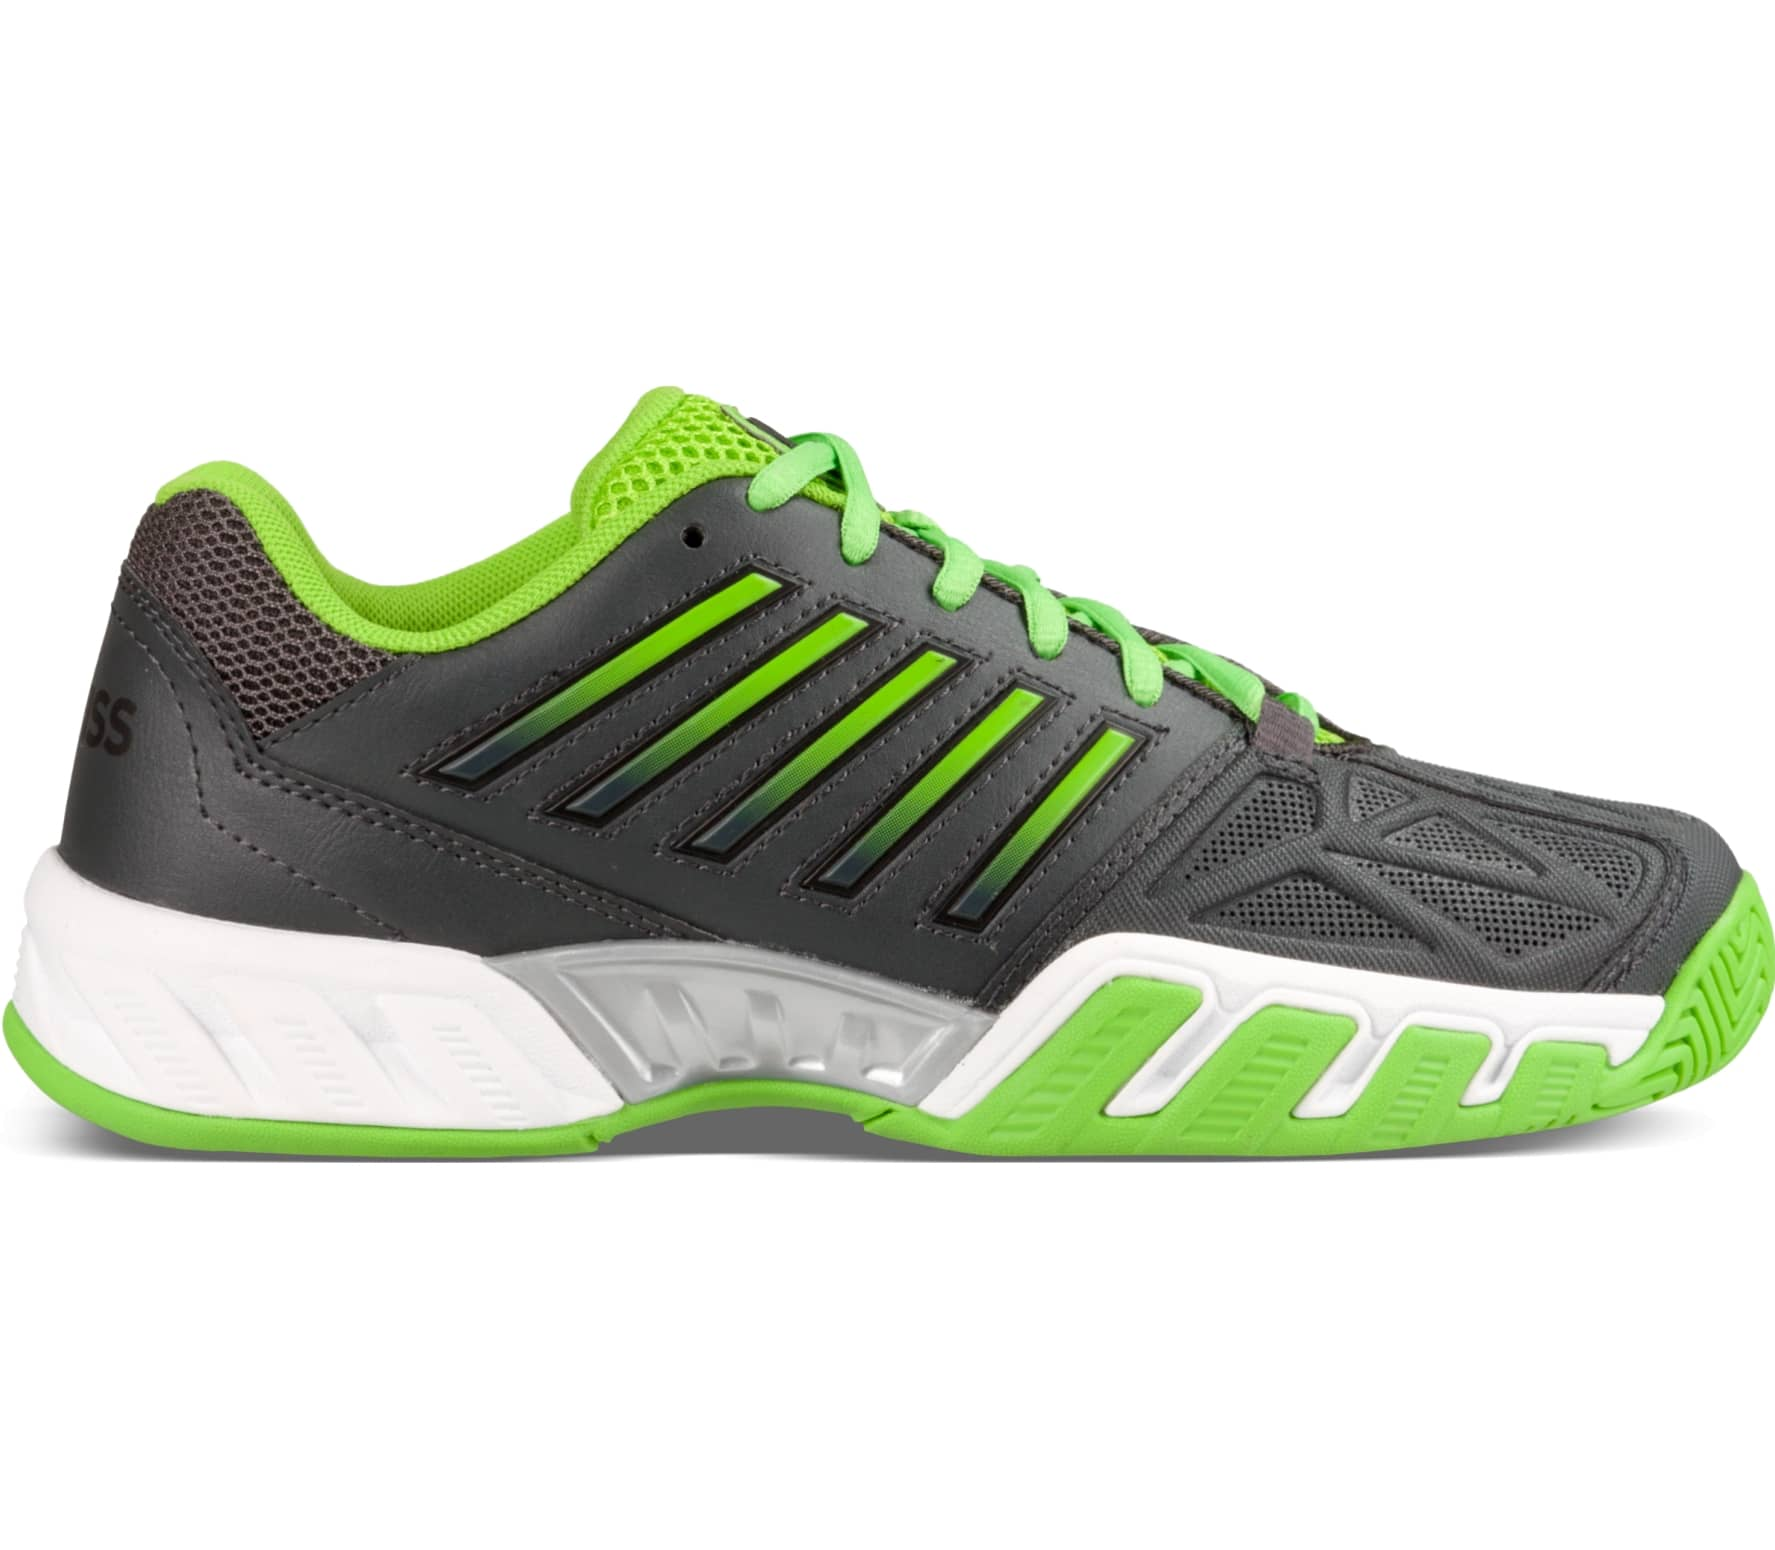 d3dfe452cb24 K-Swiss - Bigshot Light 3 Children tennis shoes (black green) - buy ...